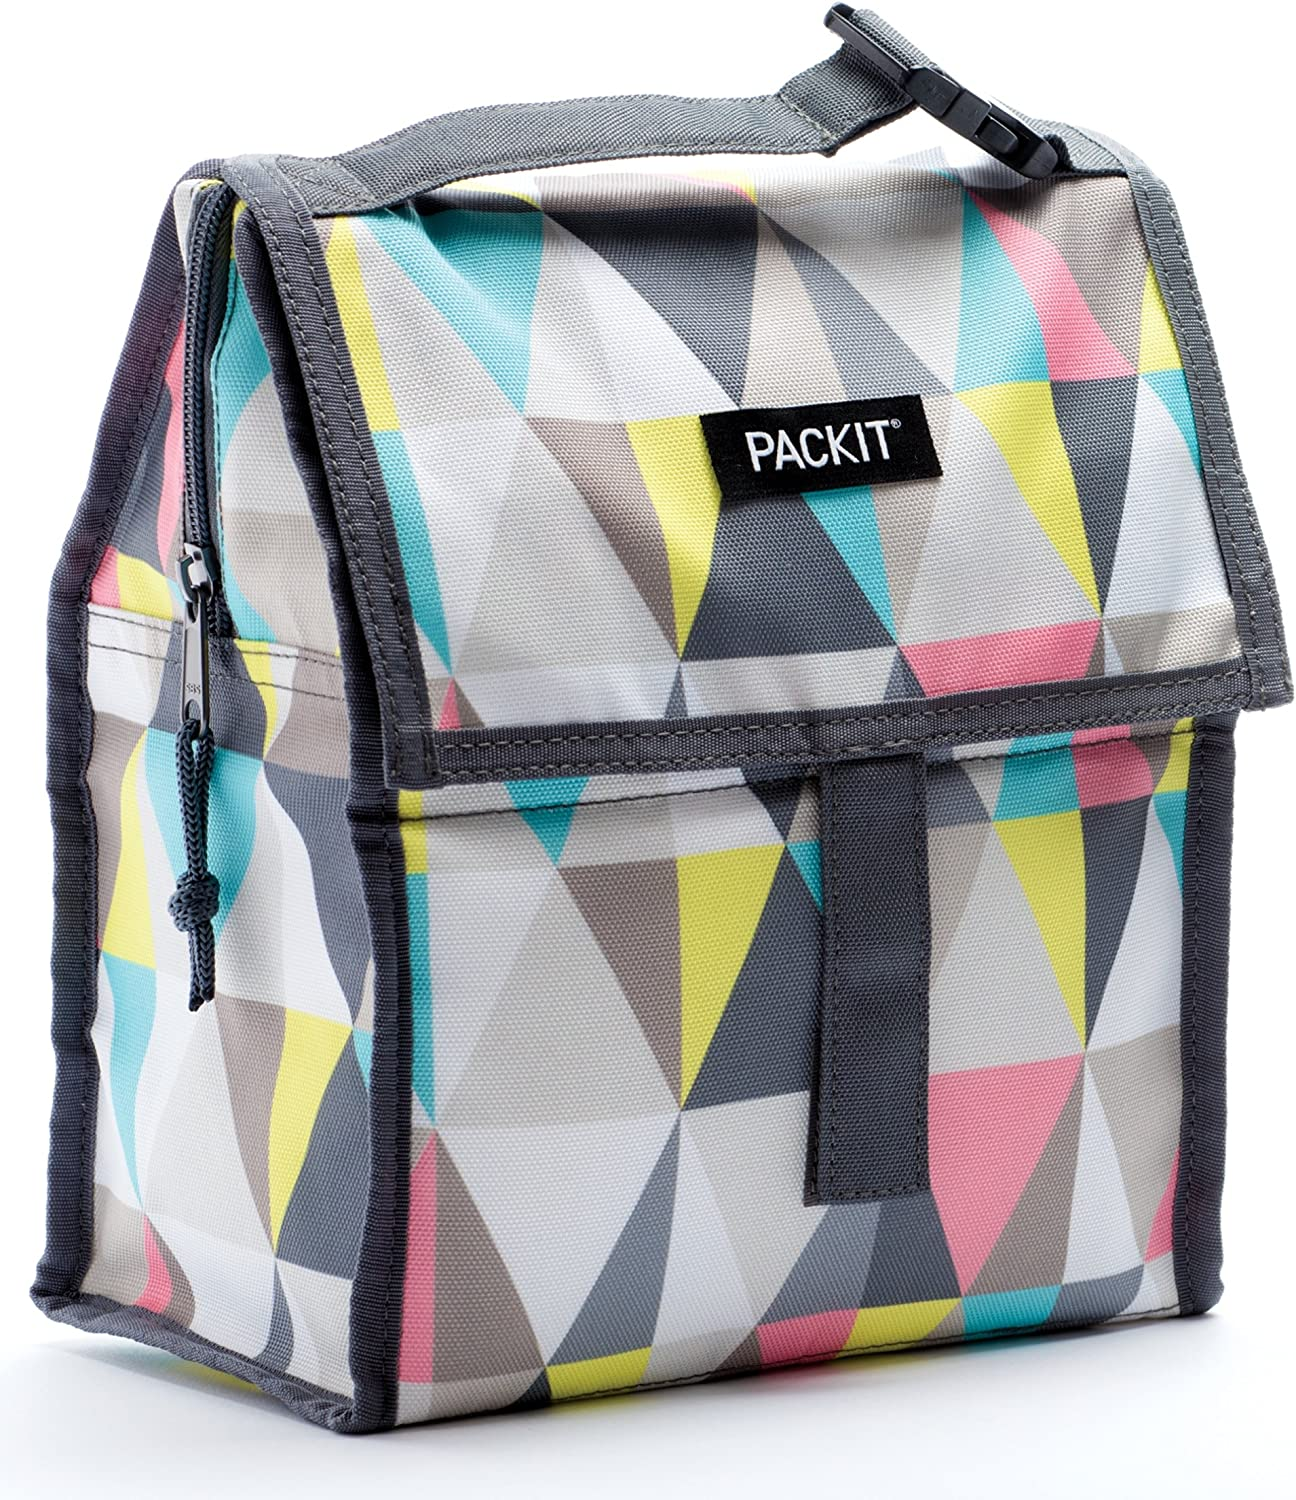 Packit Go Go Personal Cooler - Freezable lunch bag - keeps cold for 10 hours: Amazon.es: Juguetes y juegos